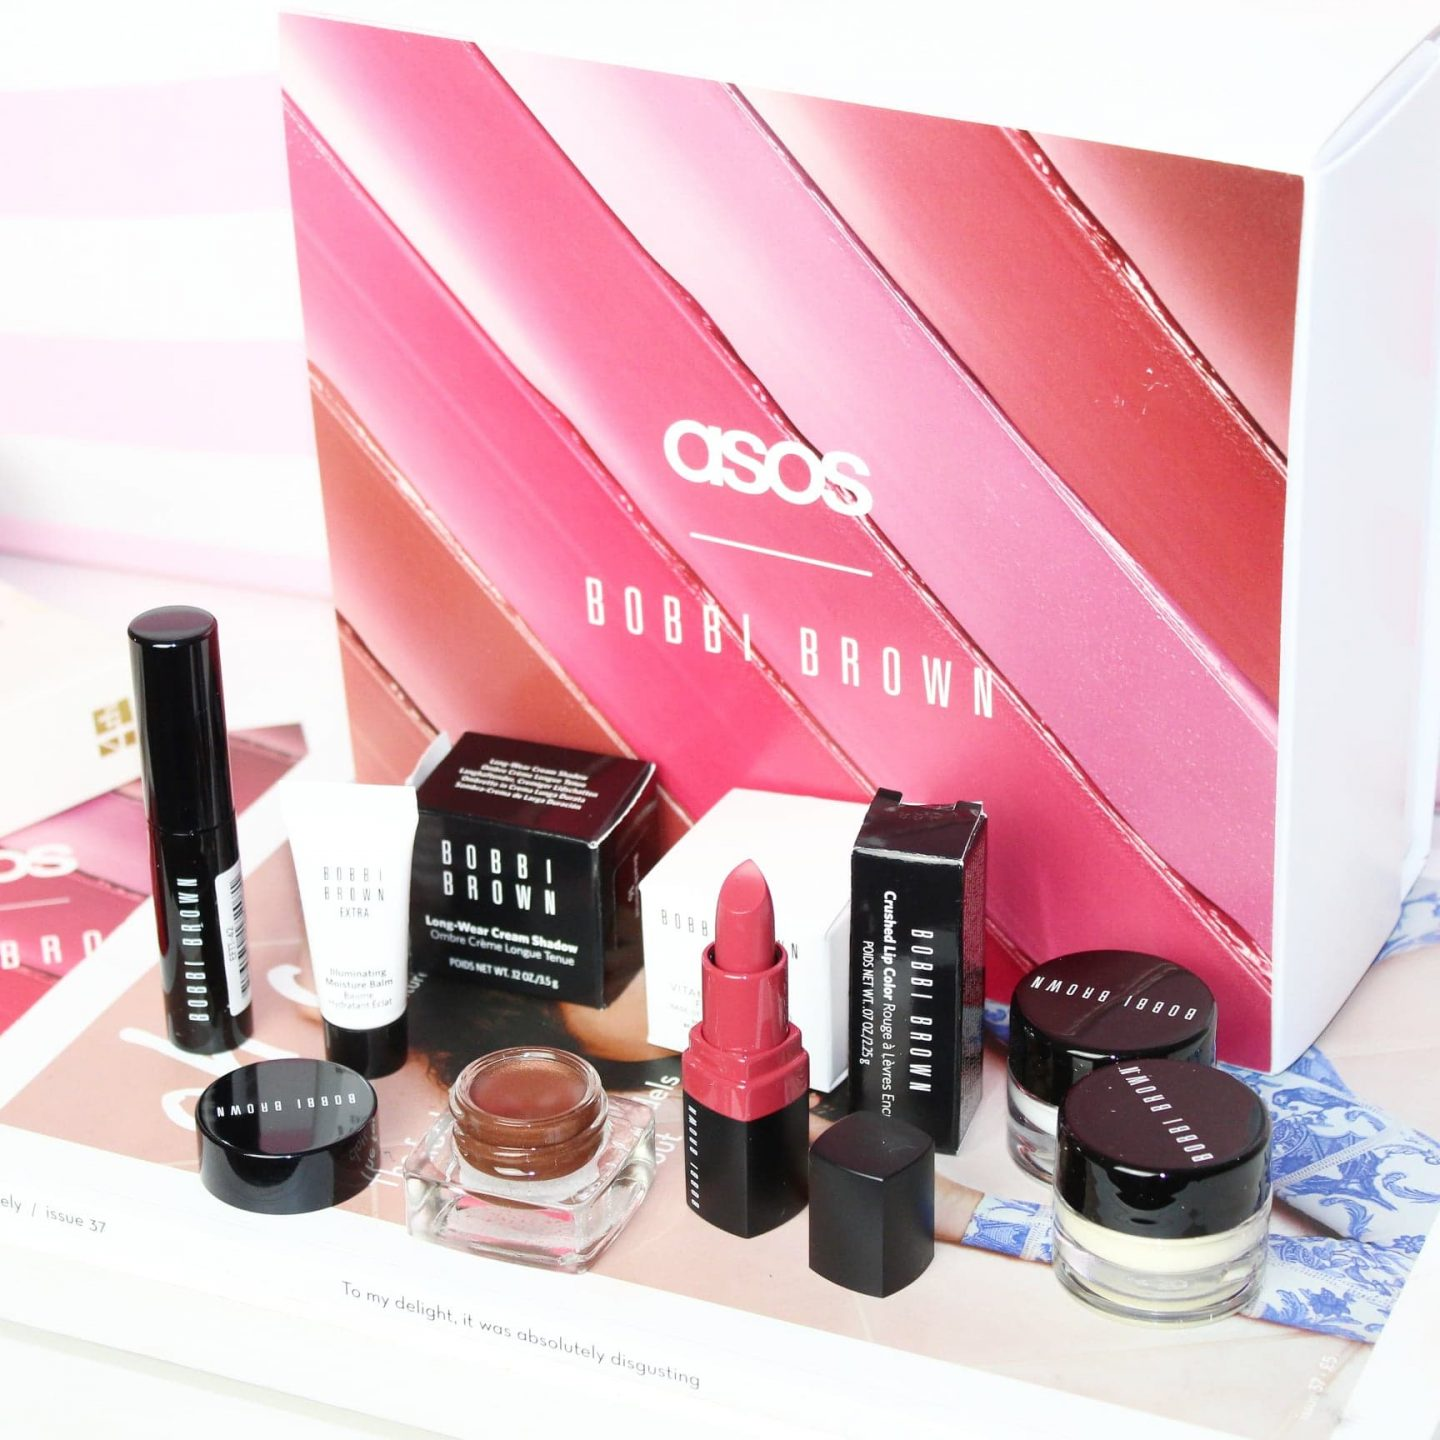 ASOS Bobbi Brown Box